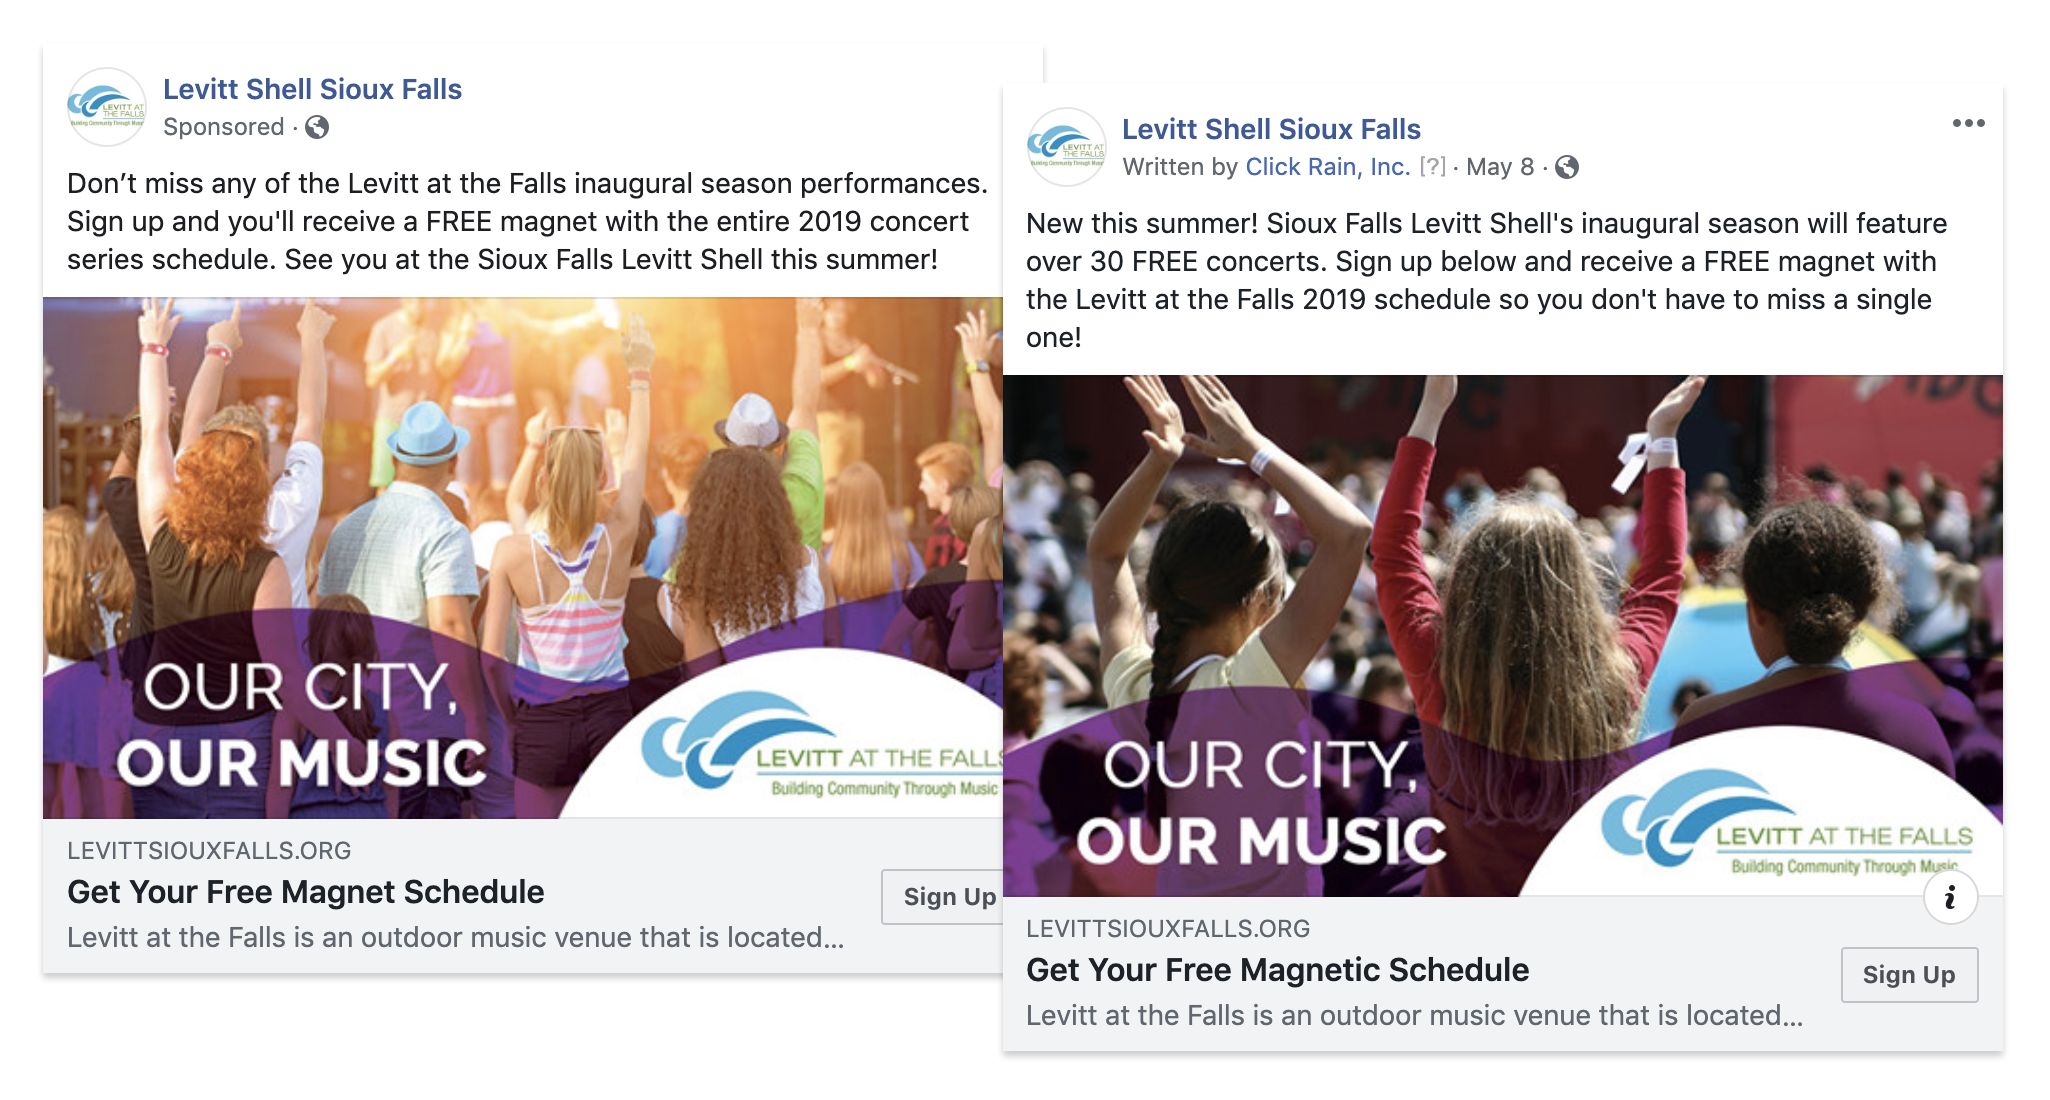 Facebook ads used for targeted digital strategy